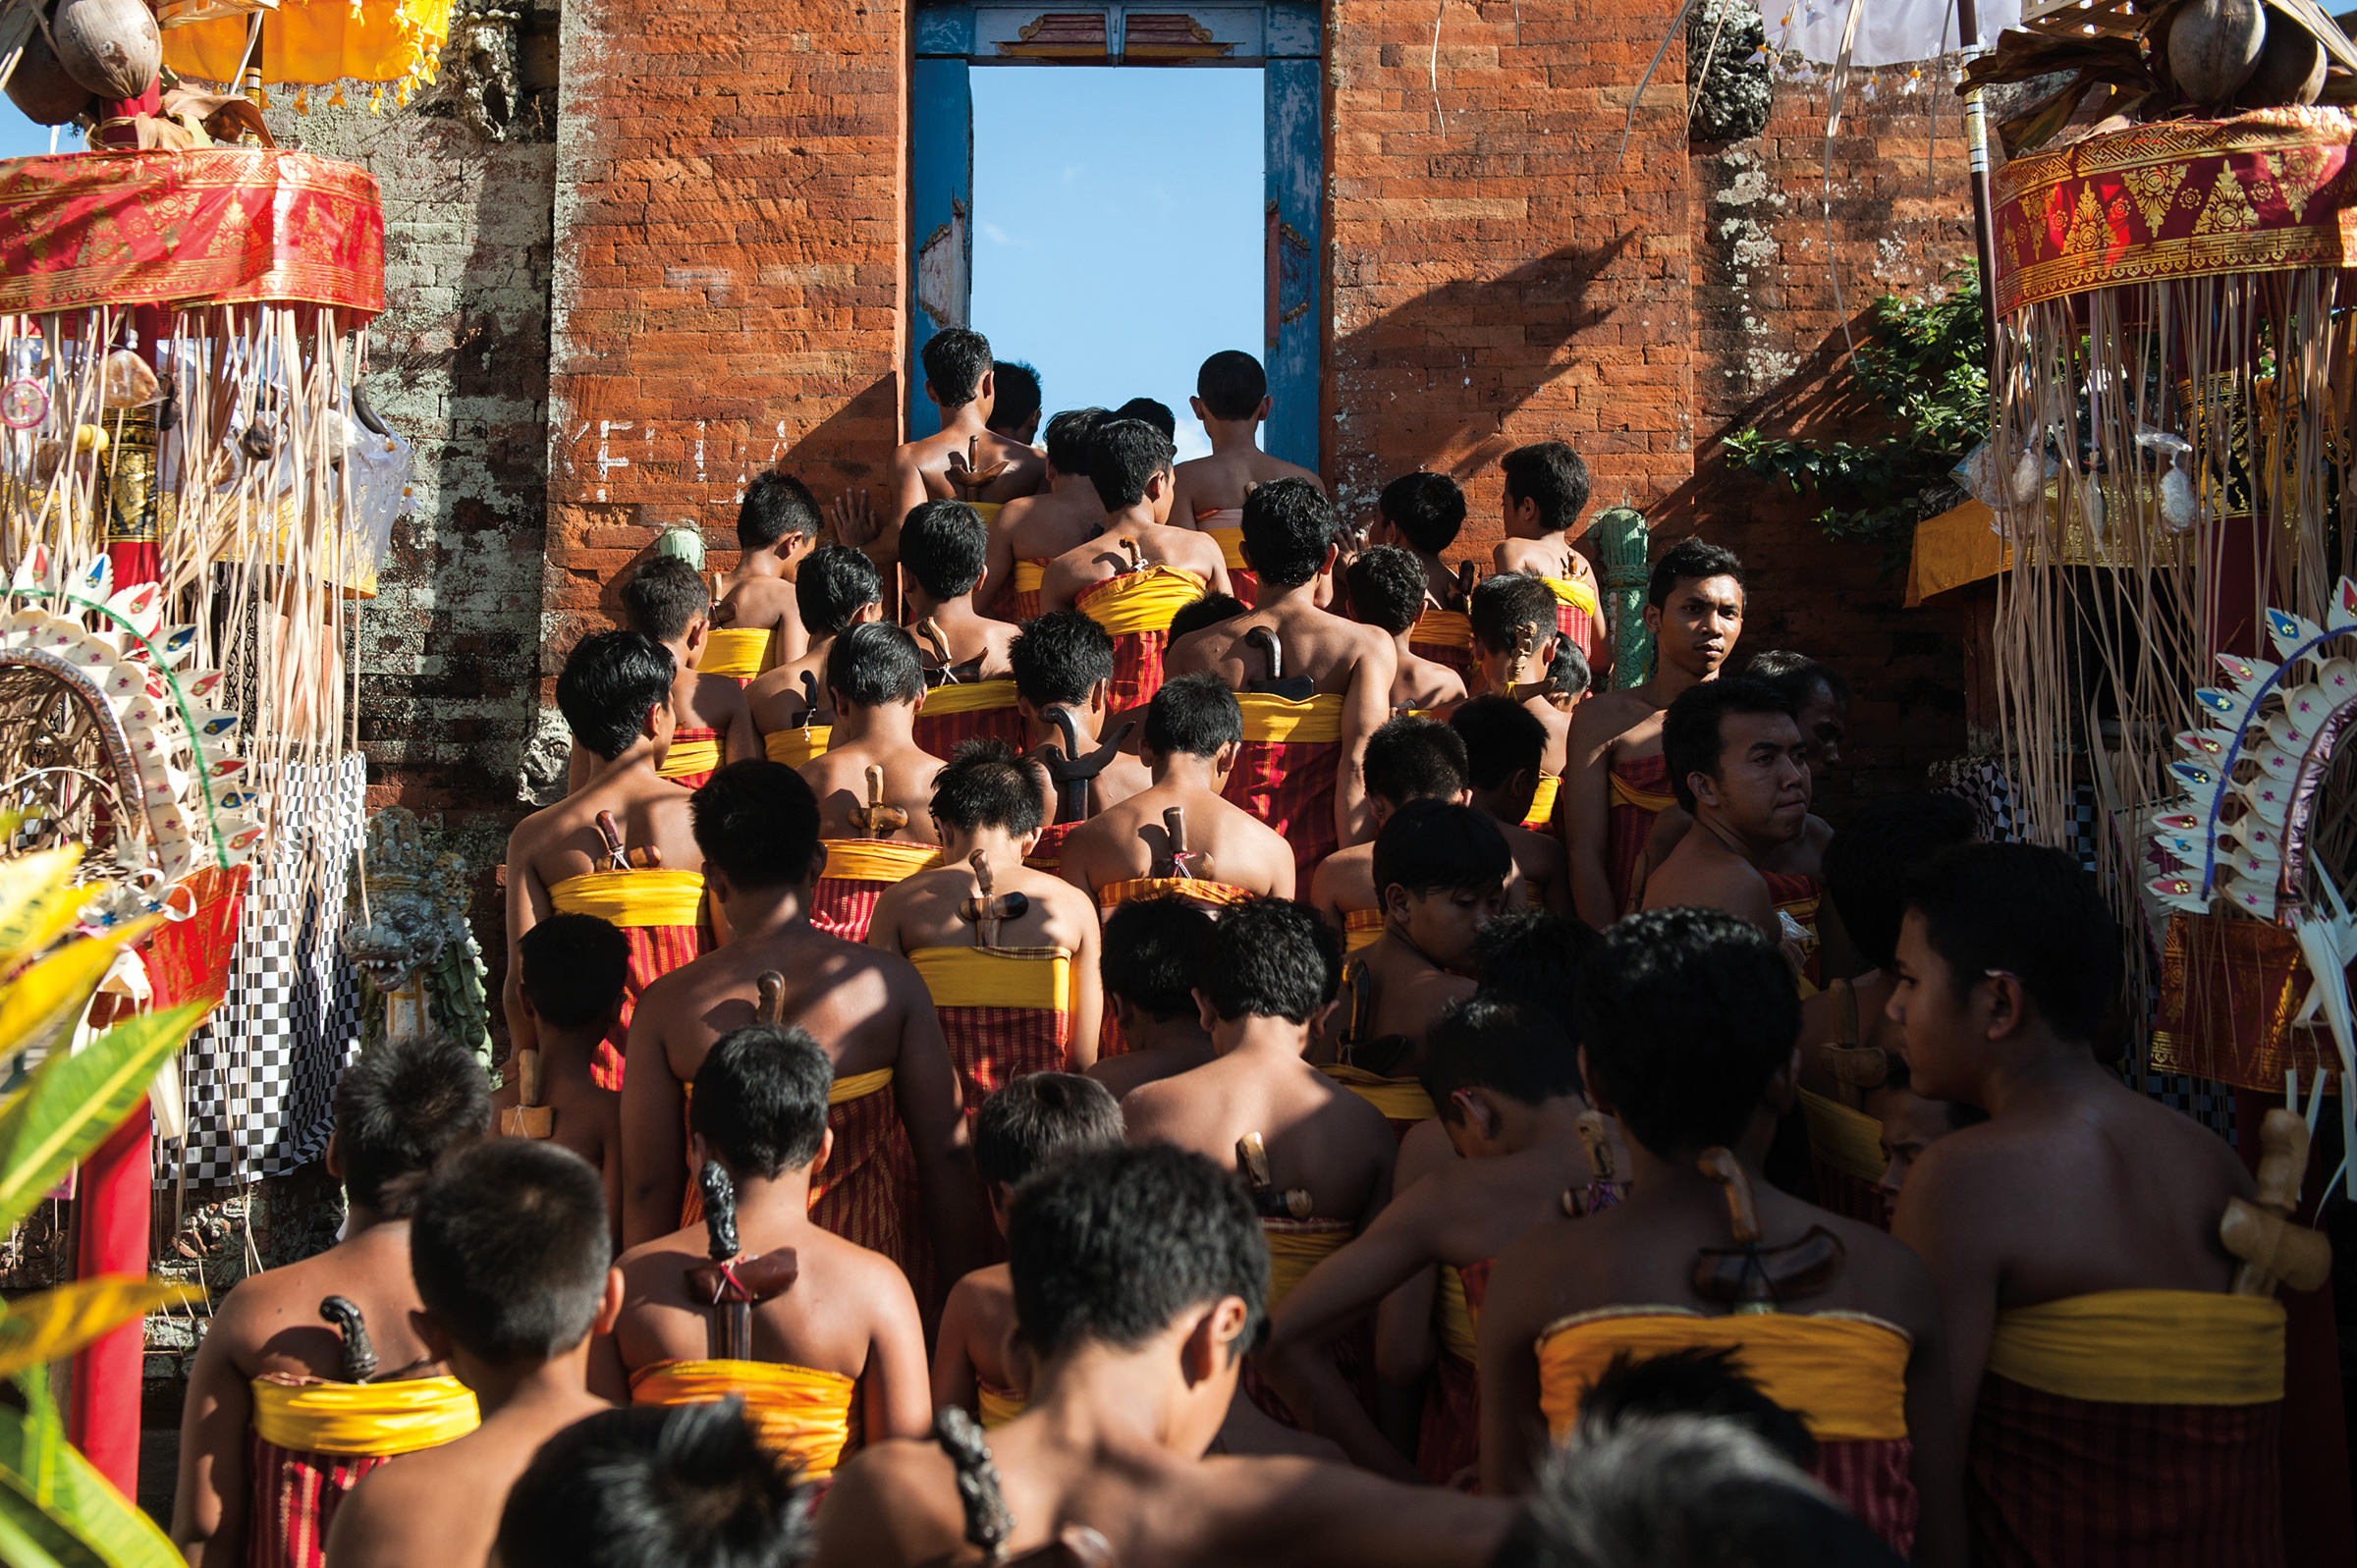 David Irons '64 witnessed teenage boys taking part in a coming-of-age ceremony at a village temple in East Bali.